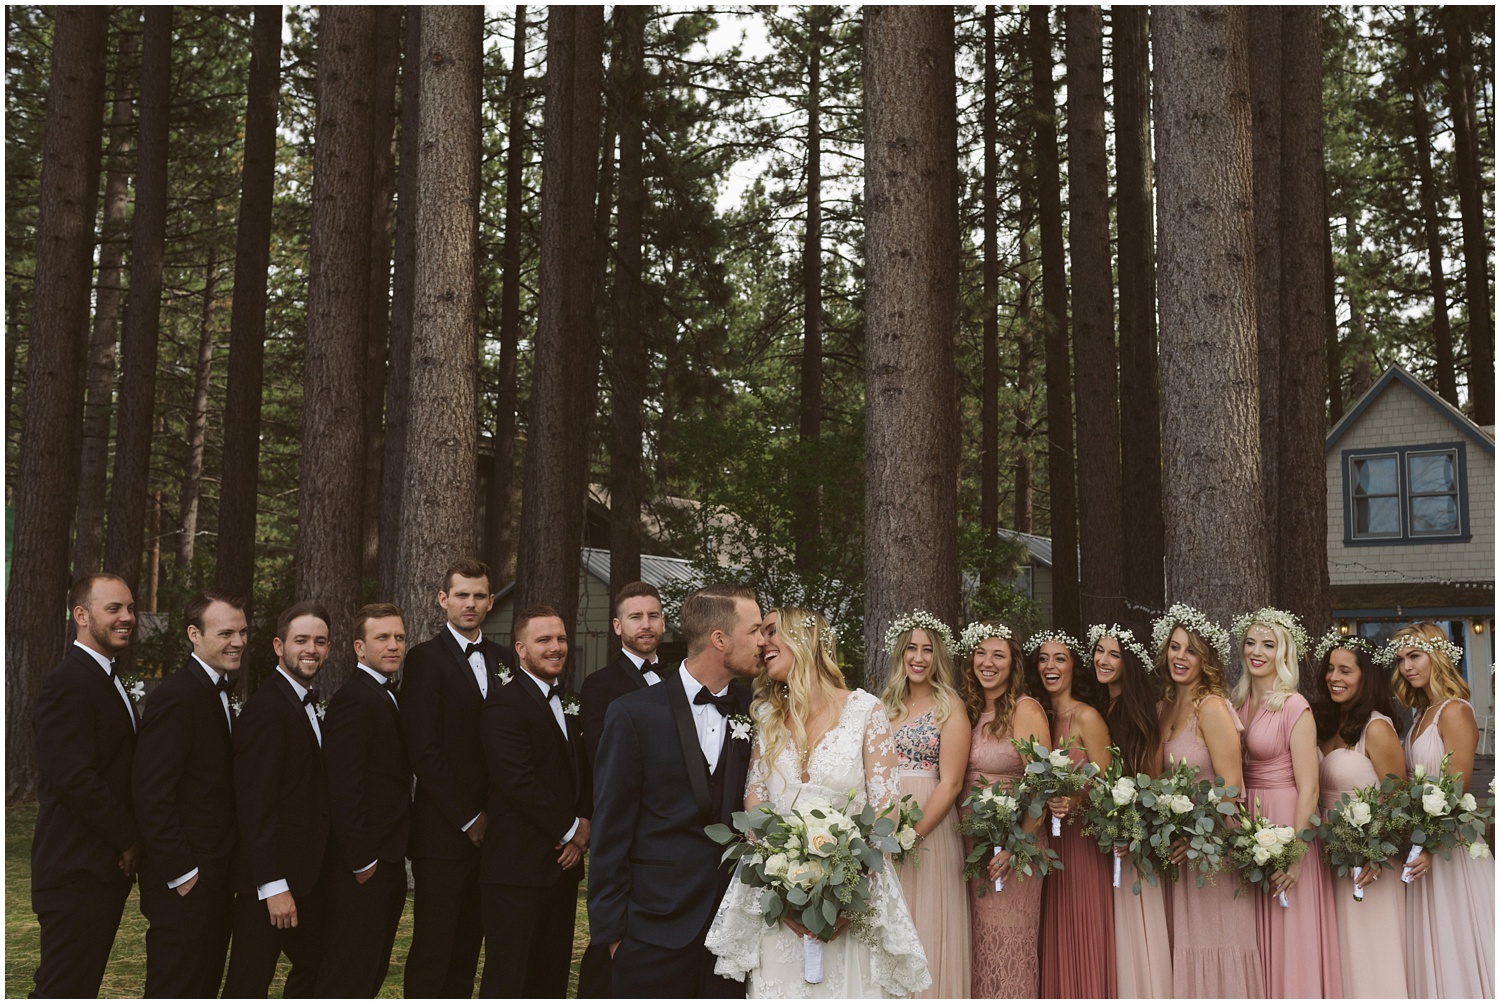 Lindsay and Bret South Lake Tahoe Bohemian Wedding Pink Bridesmaid Dresses